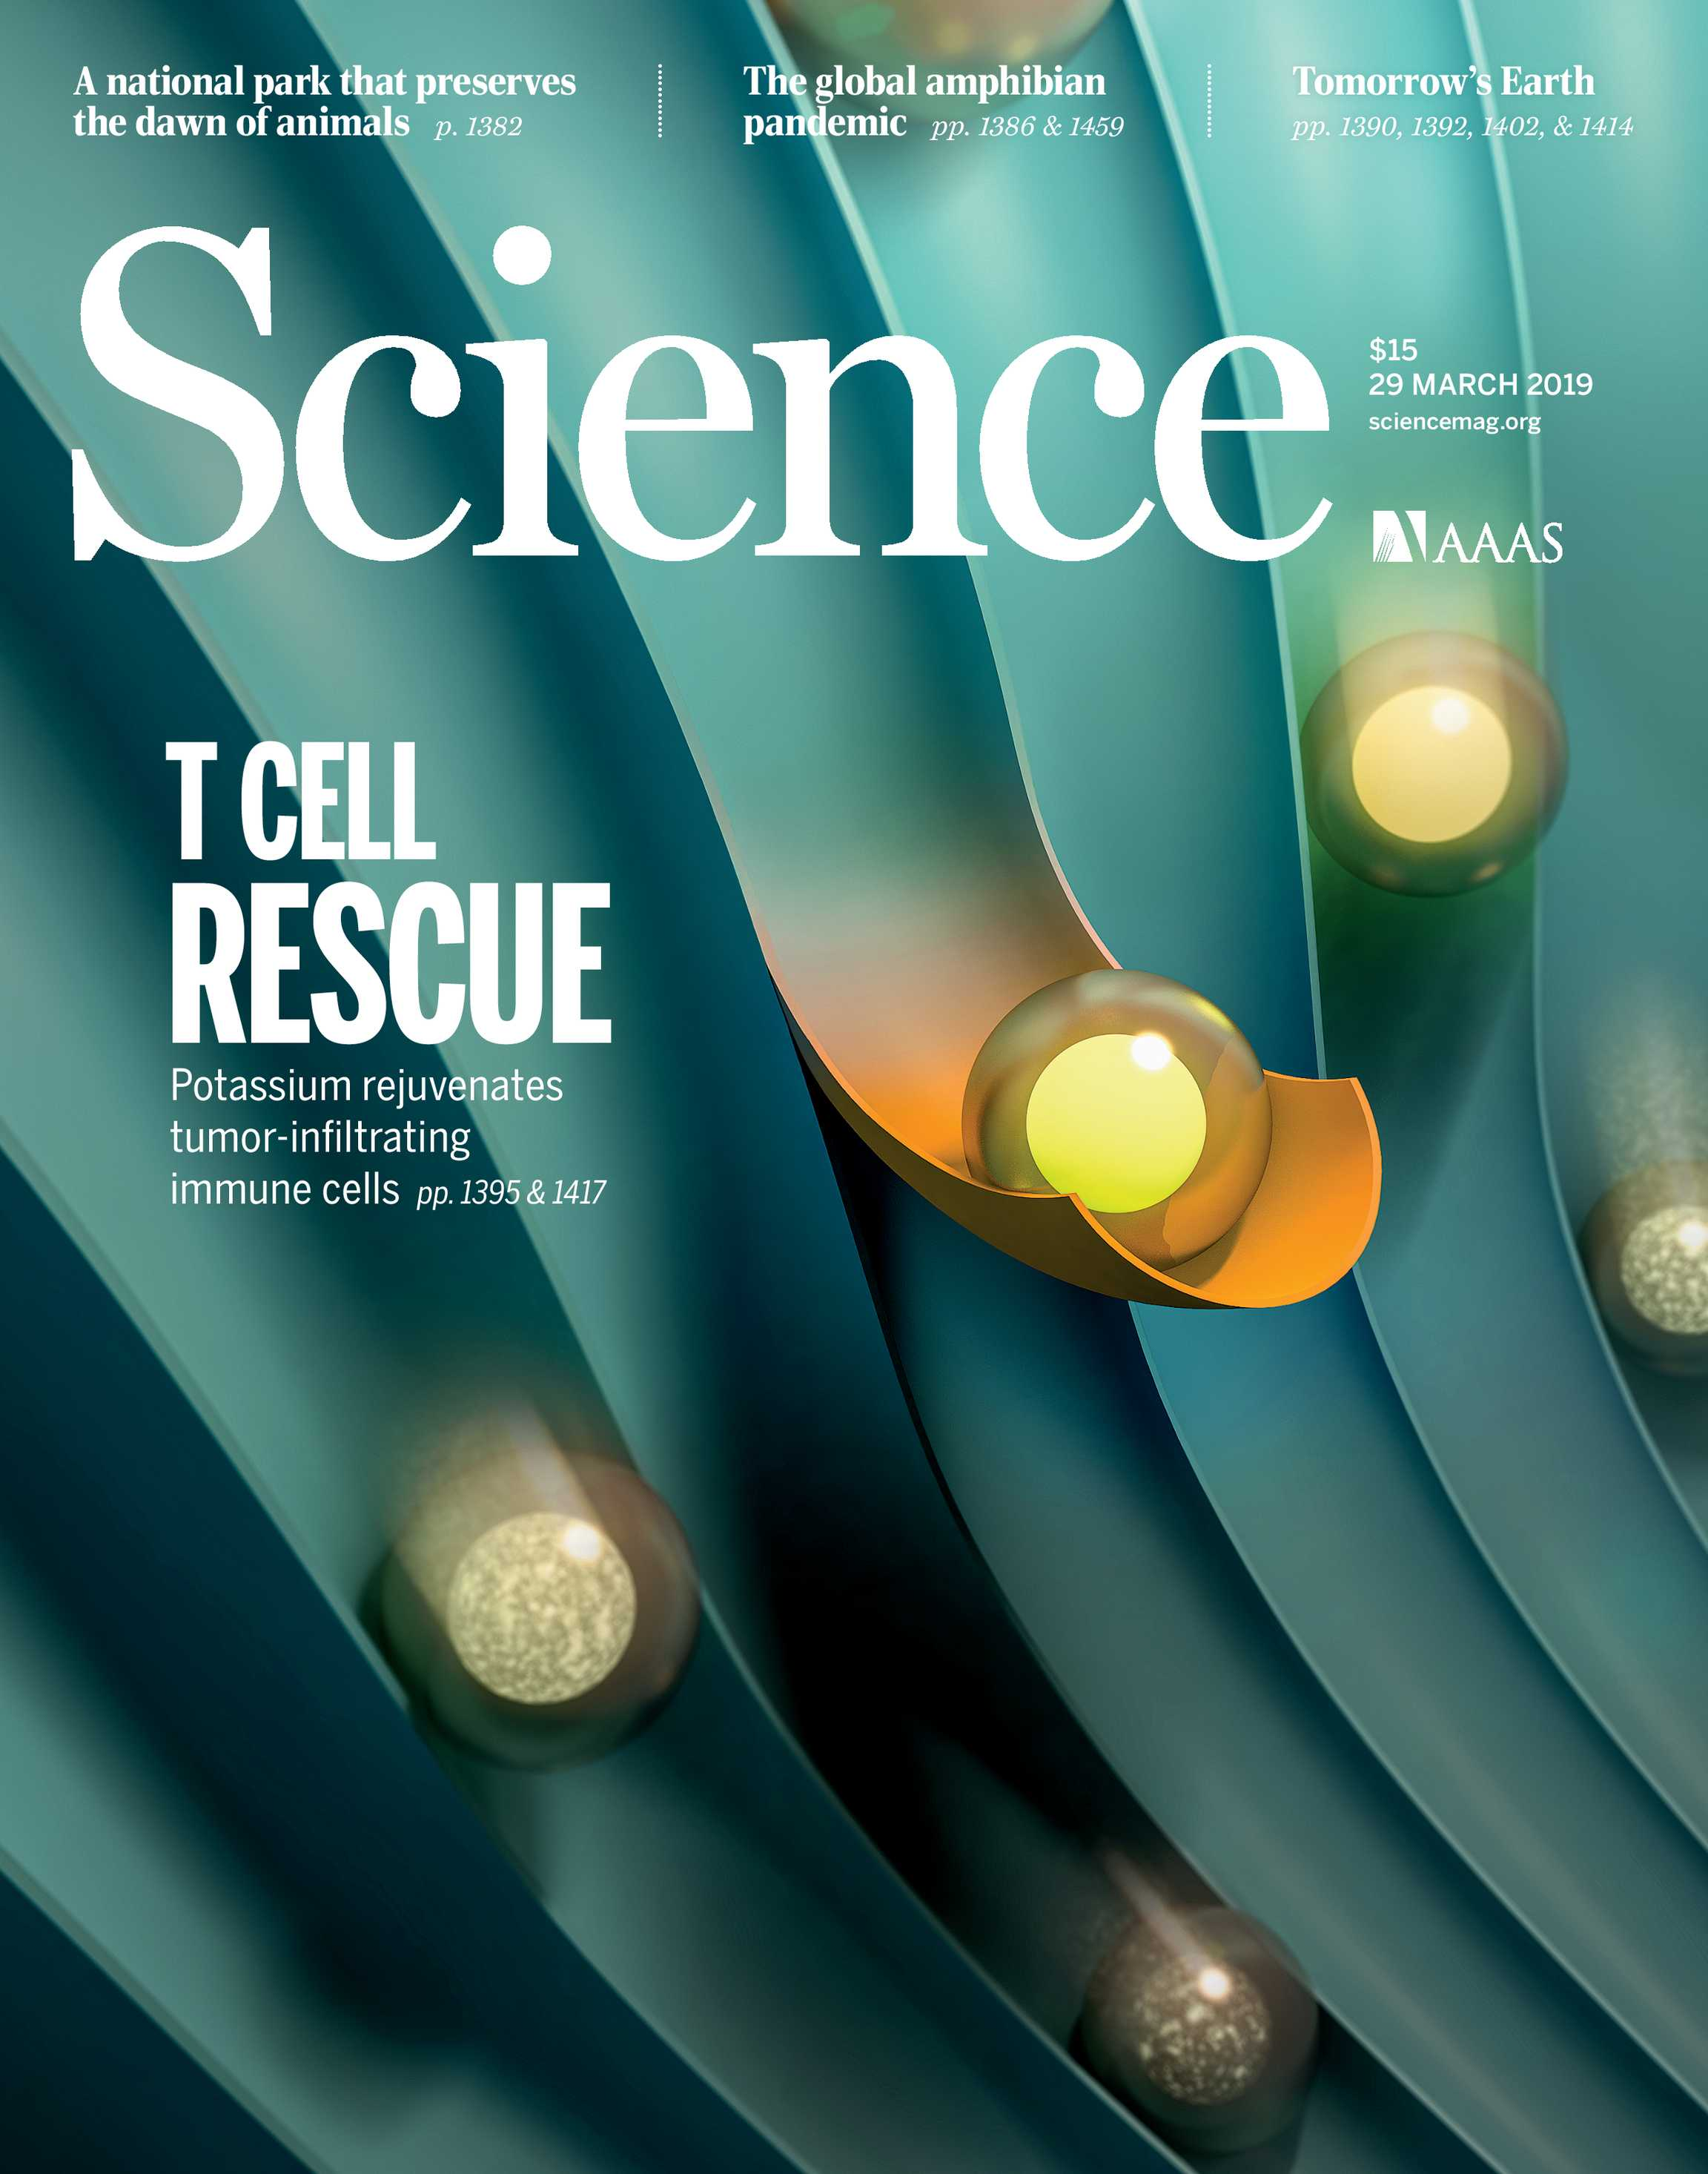 Science Magazine March 29 2019 Page Cover